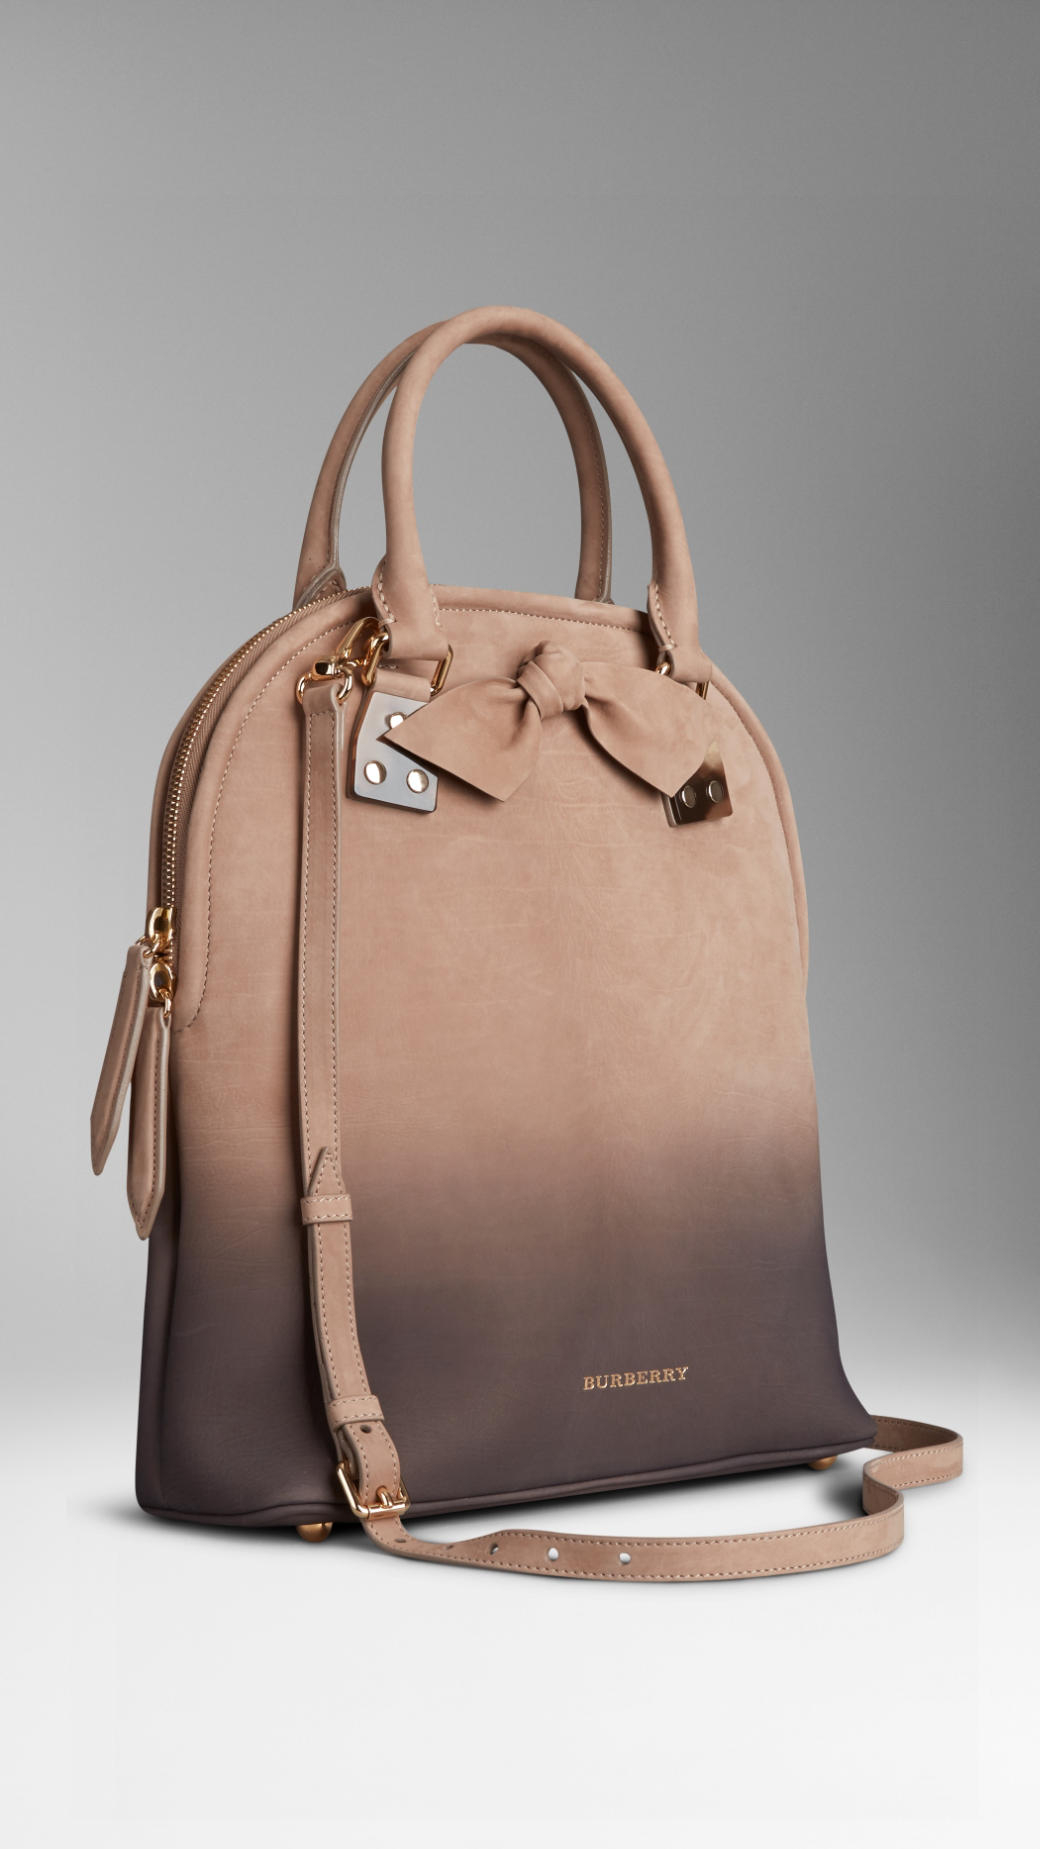 Lyst - Burberry The Bloomsbury In Dégradé Nubuck in Natural